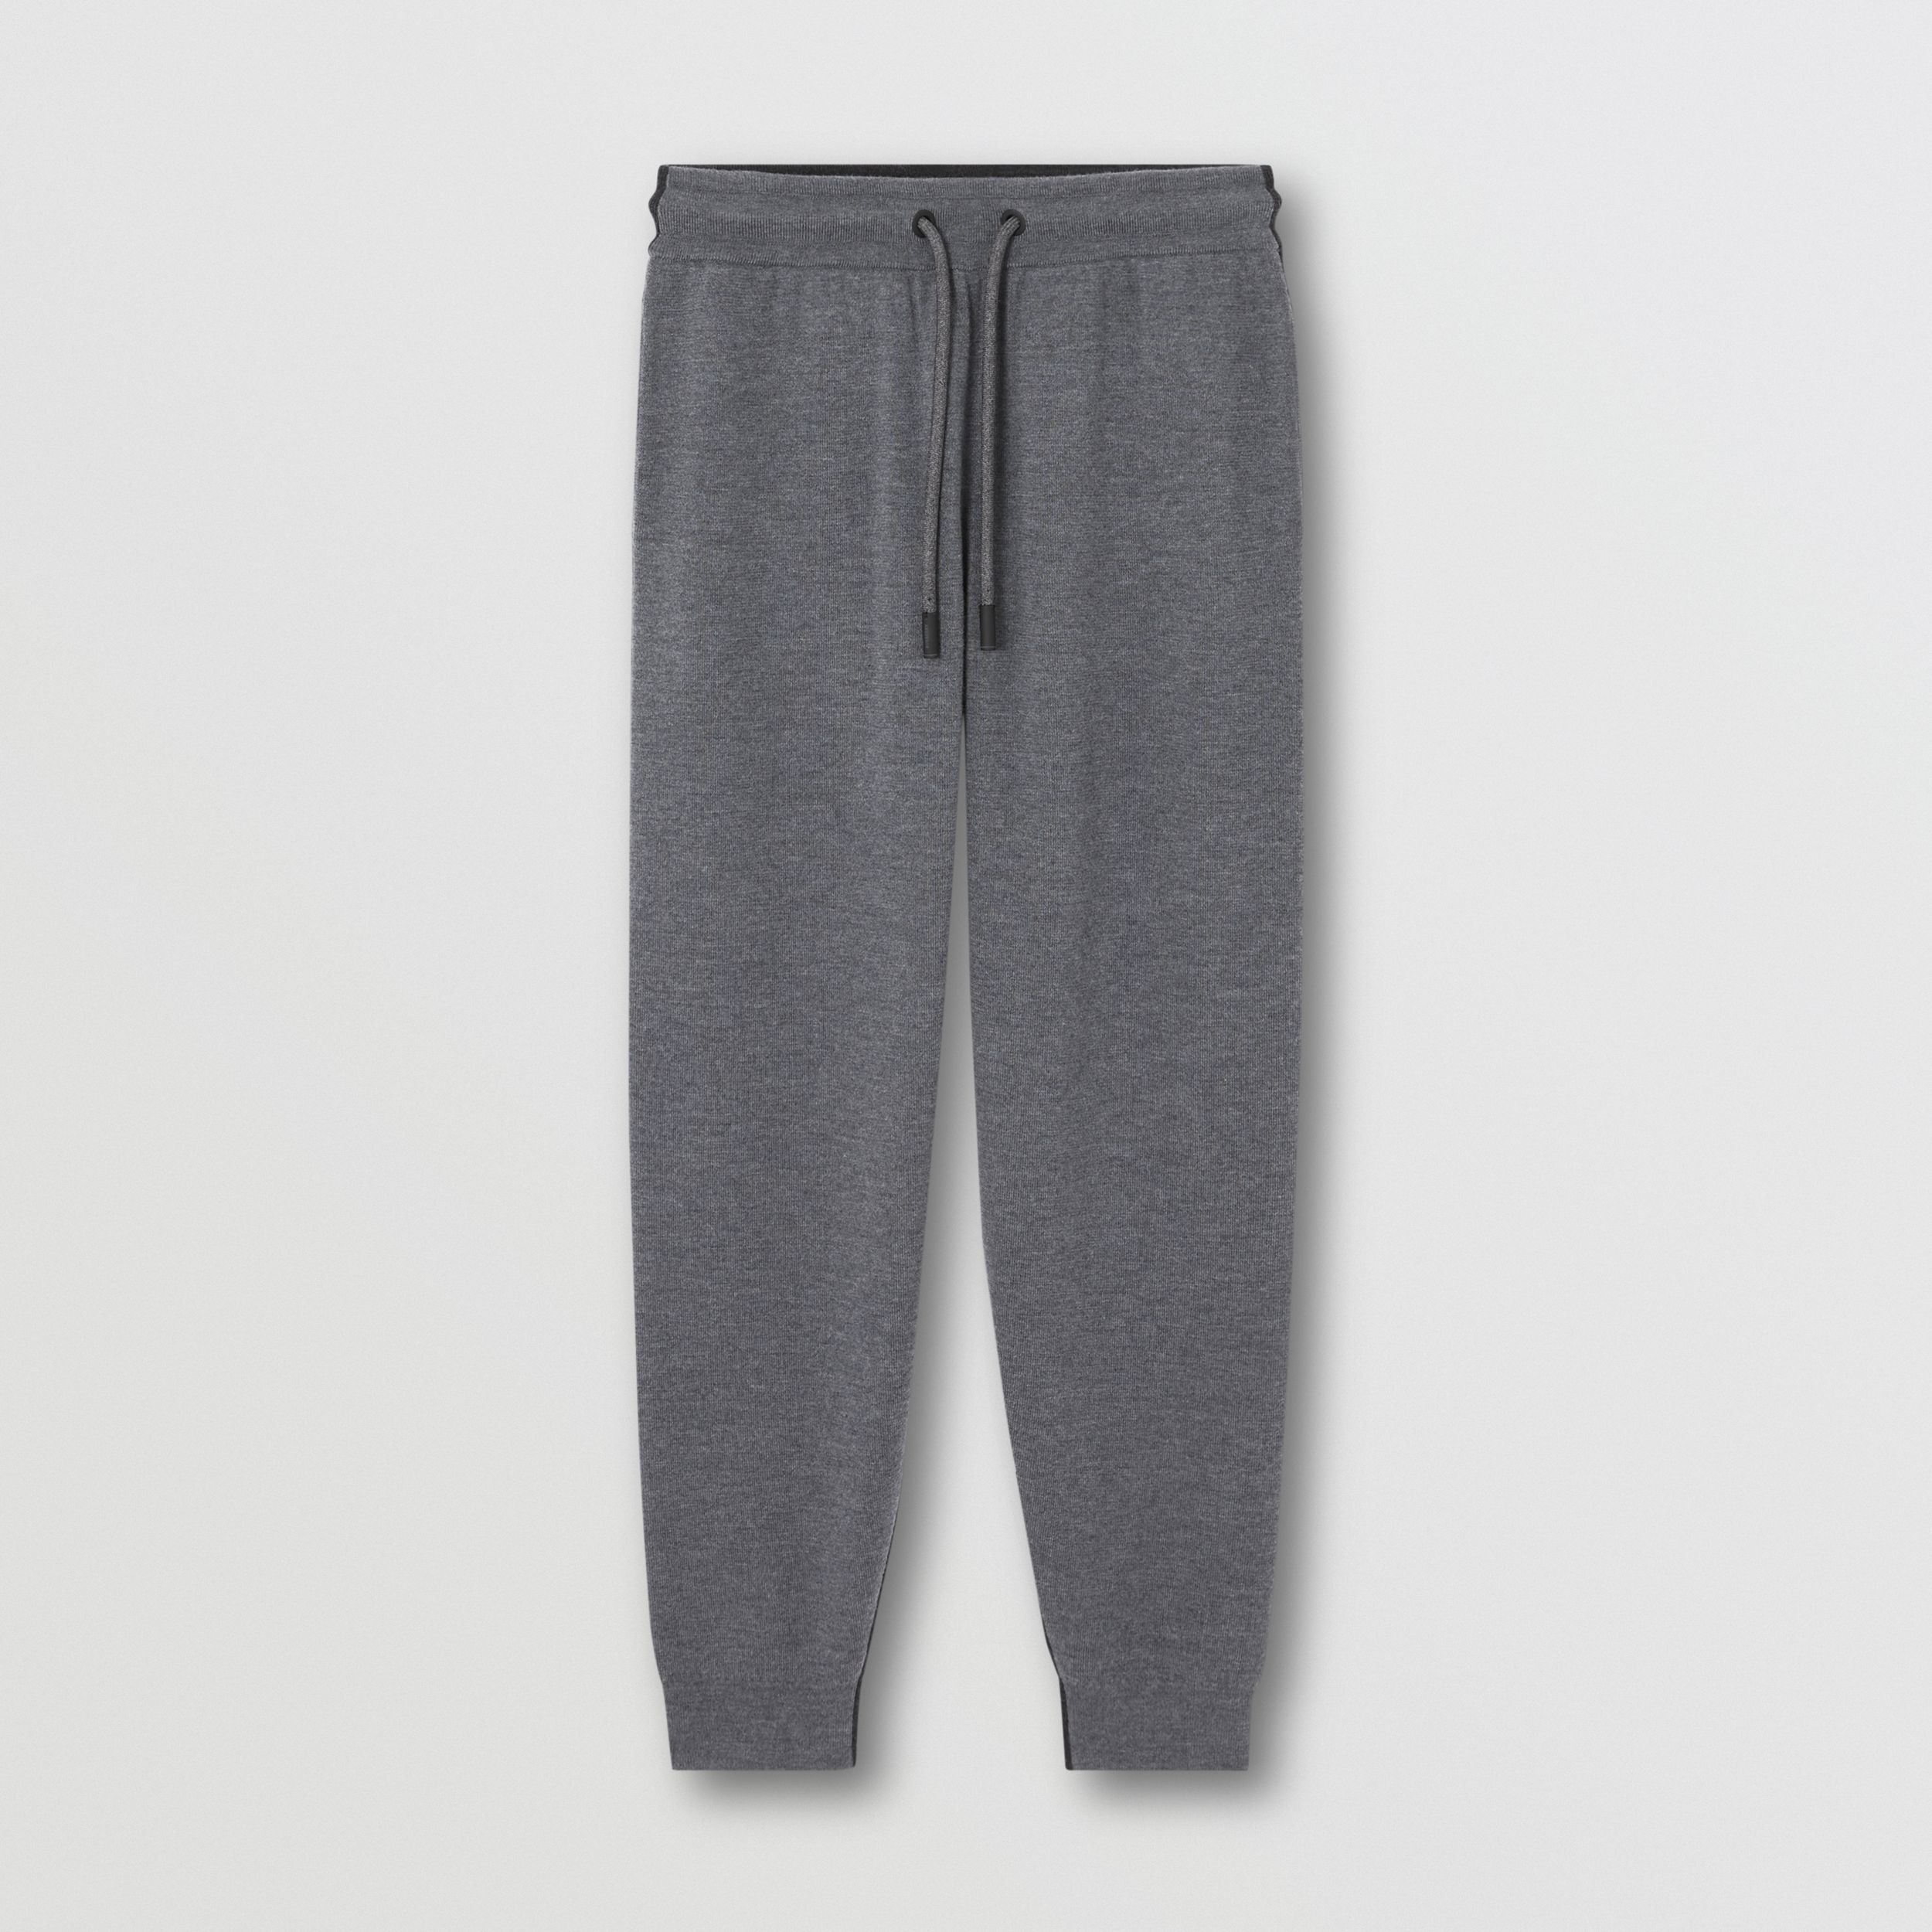 Two-tone Merino Wool Drawcord Jogging Pants in Charcoal Melange - Women | Burberry - 4